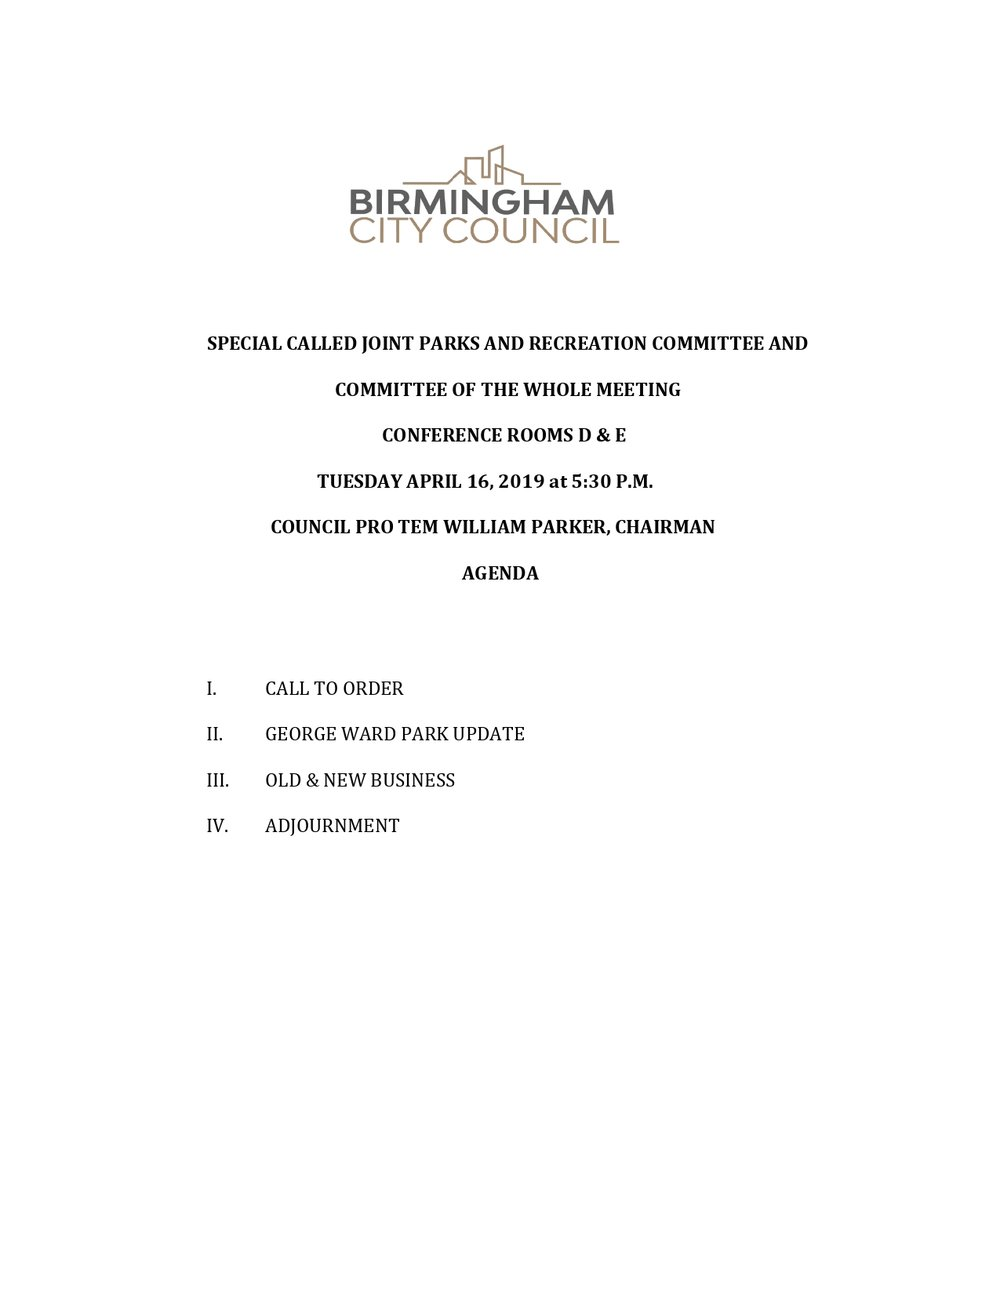 Special Called Parks and Recreation Committee Meeting Agenda April 16,2019